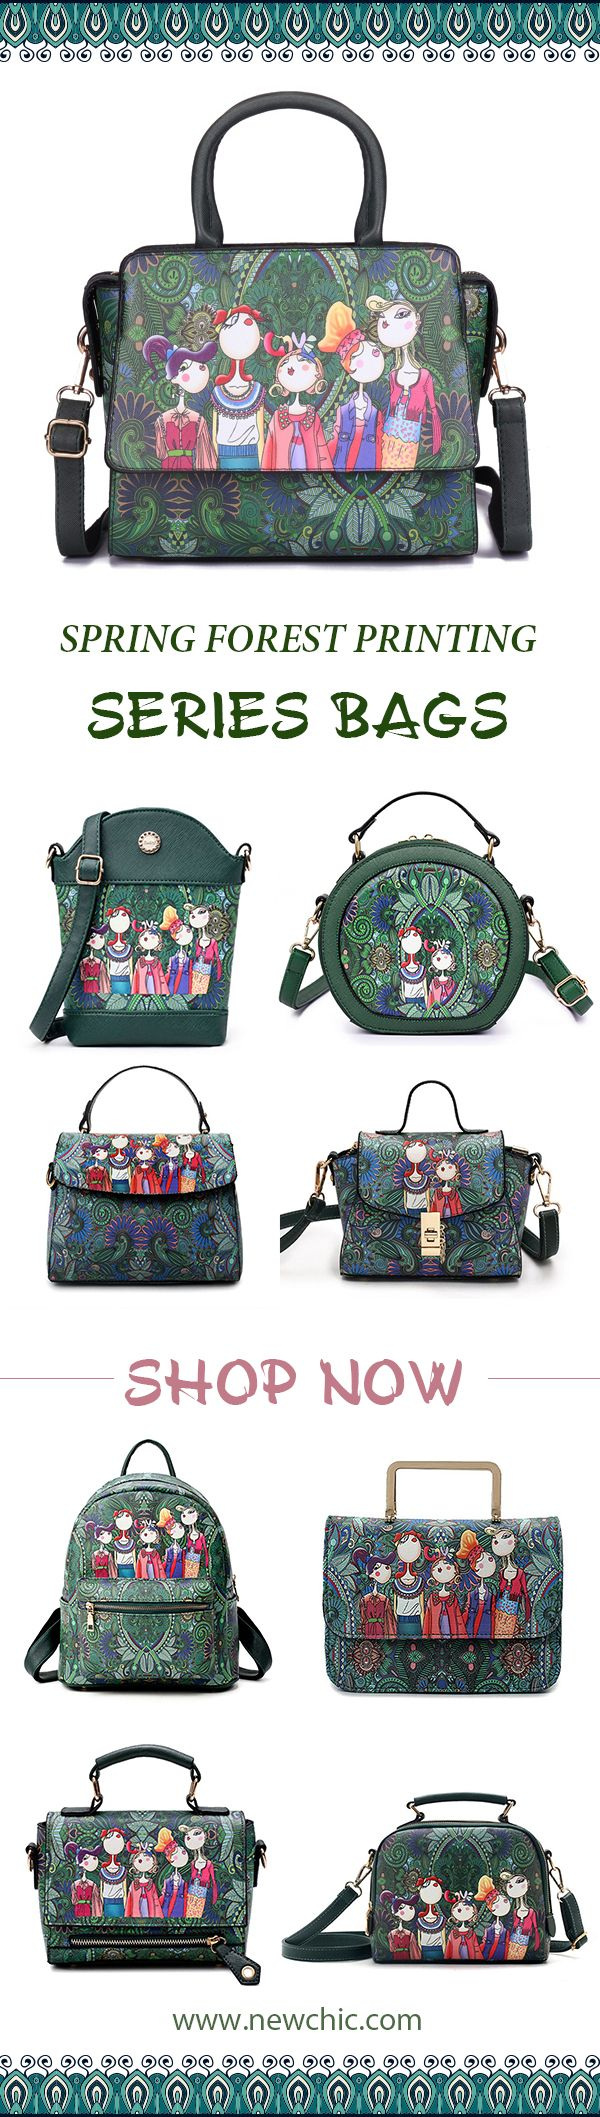 2018 newest fashion trend.Spring forest printing series bag.Green represents vitality and lively.Young fashion.